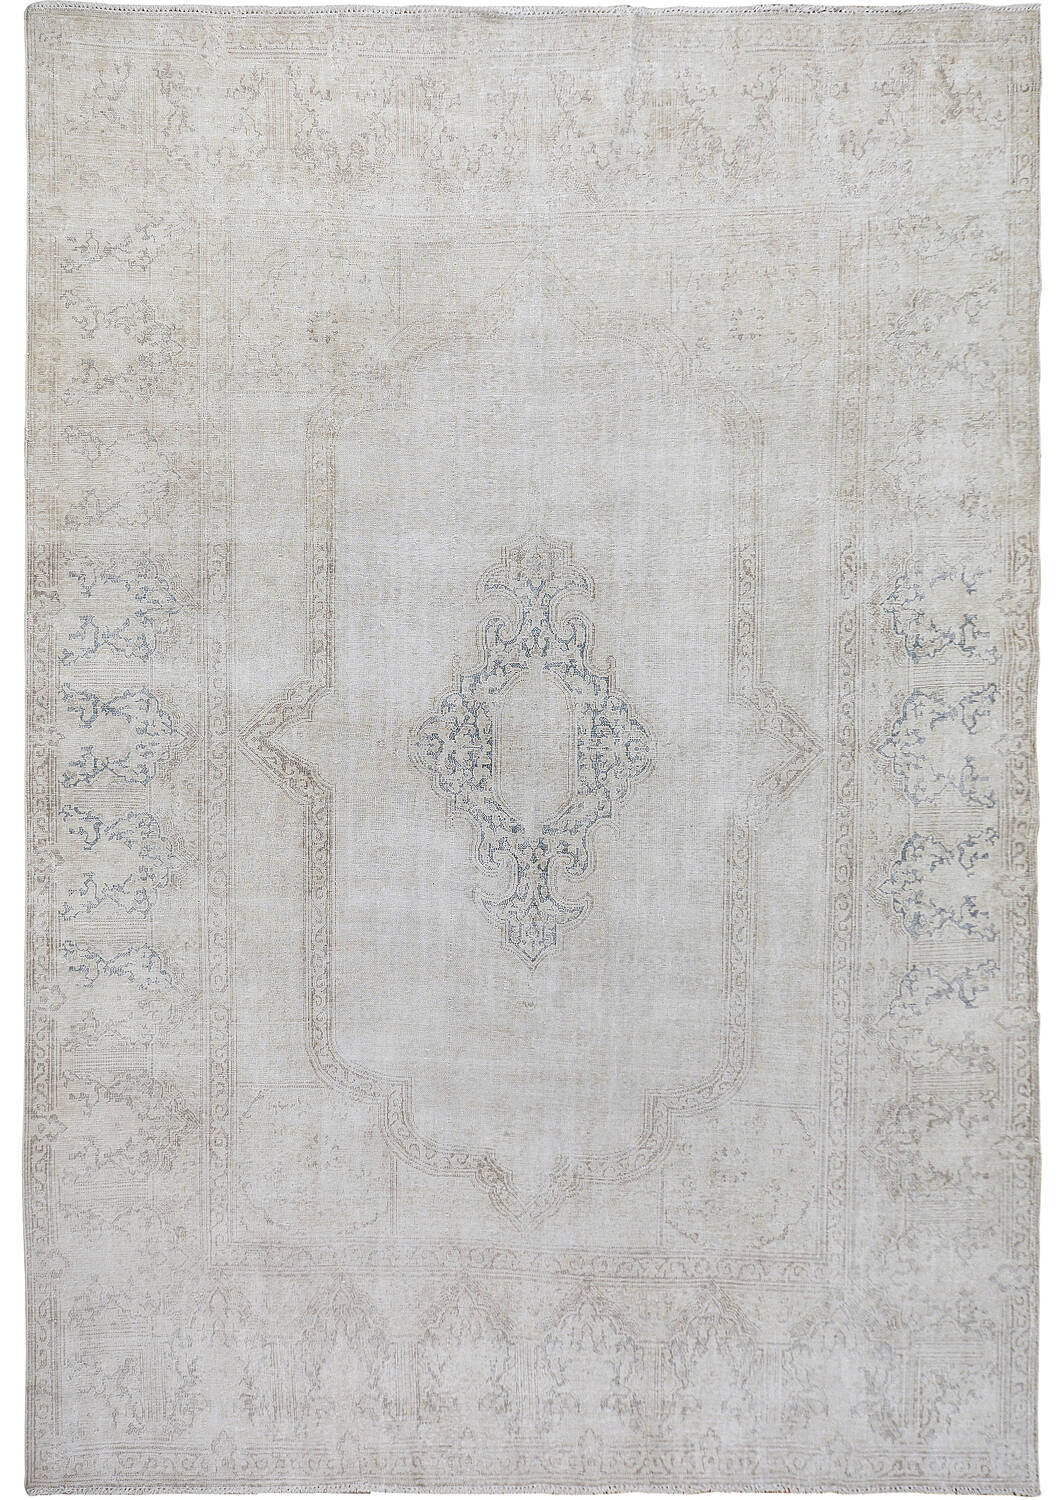 Antique Muted Kerman Distressed Persian Area Rug 9x12 image 1